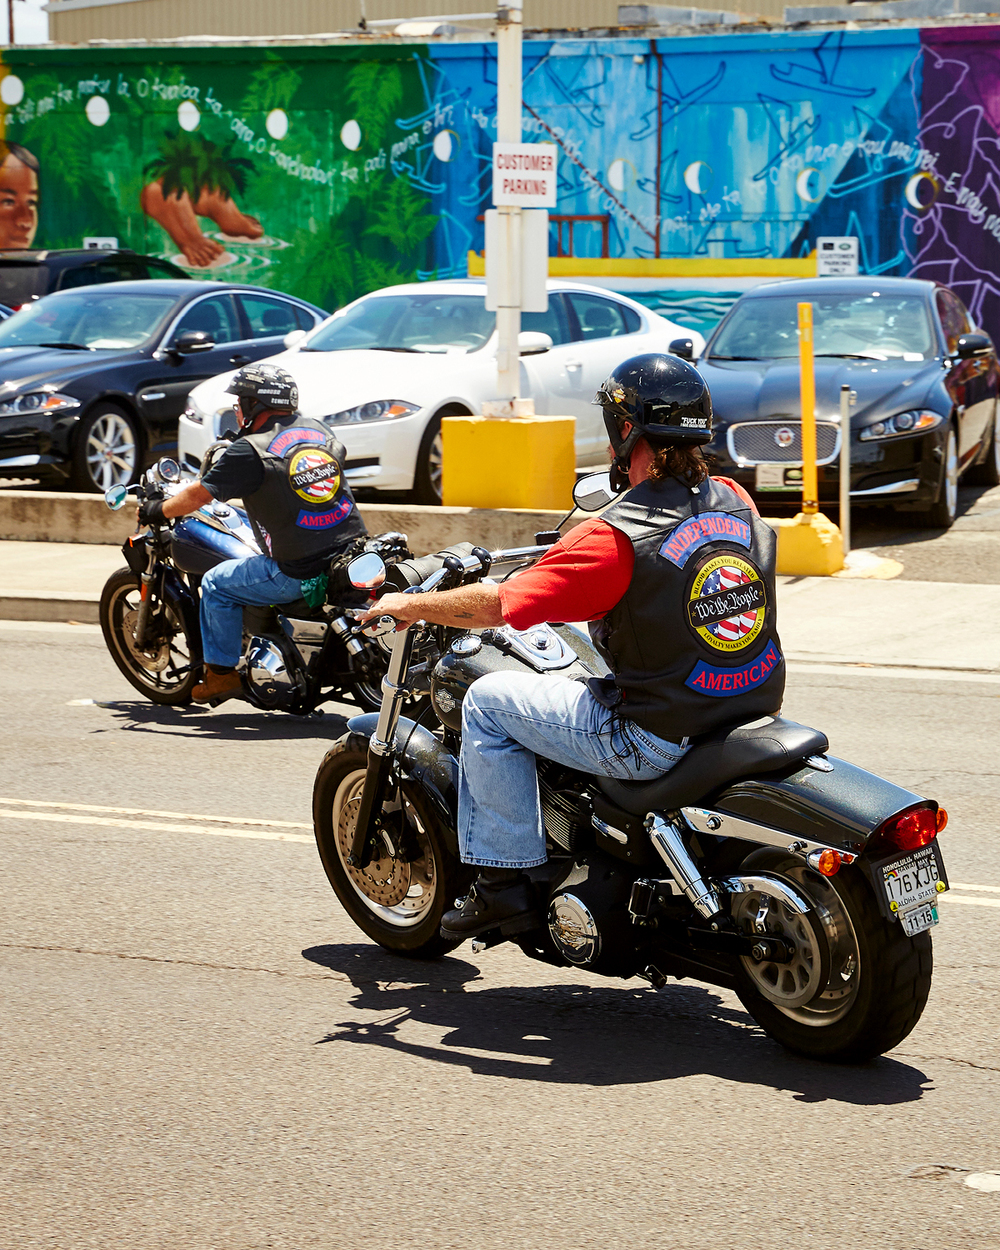 FREQUENT CUSTOMERS AT HONOLULU BEERWORKS